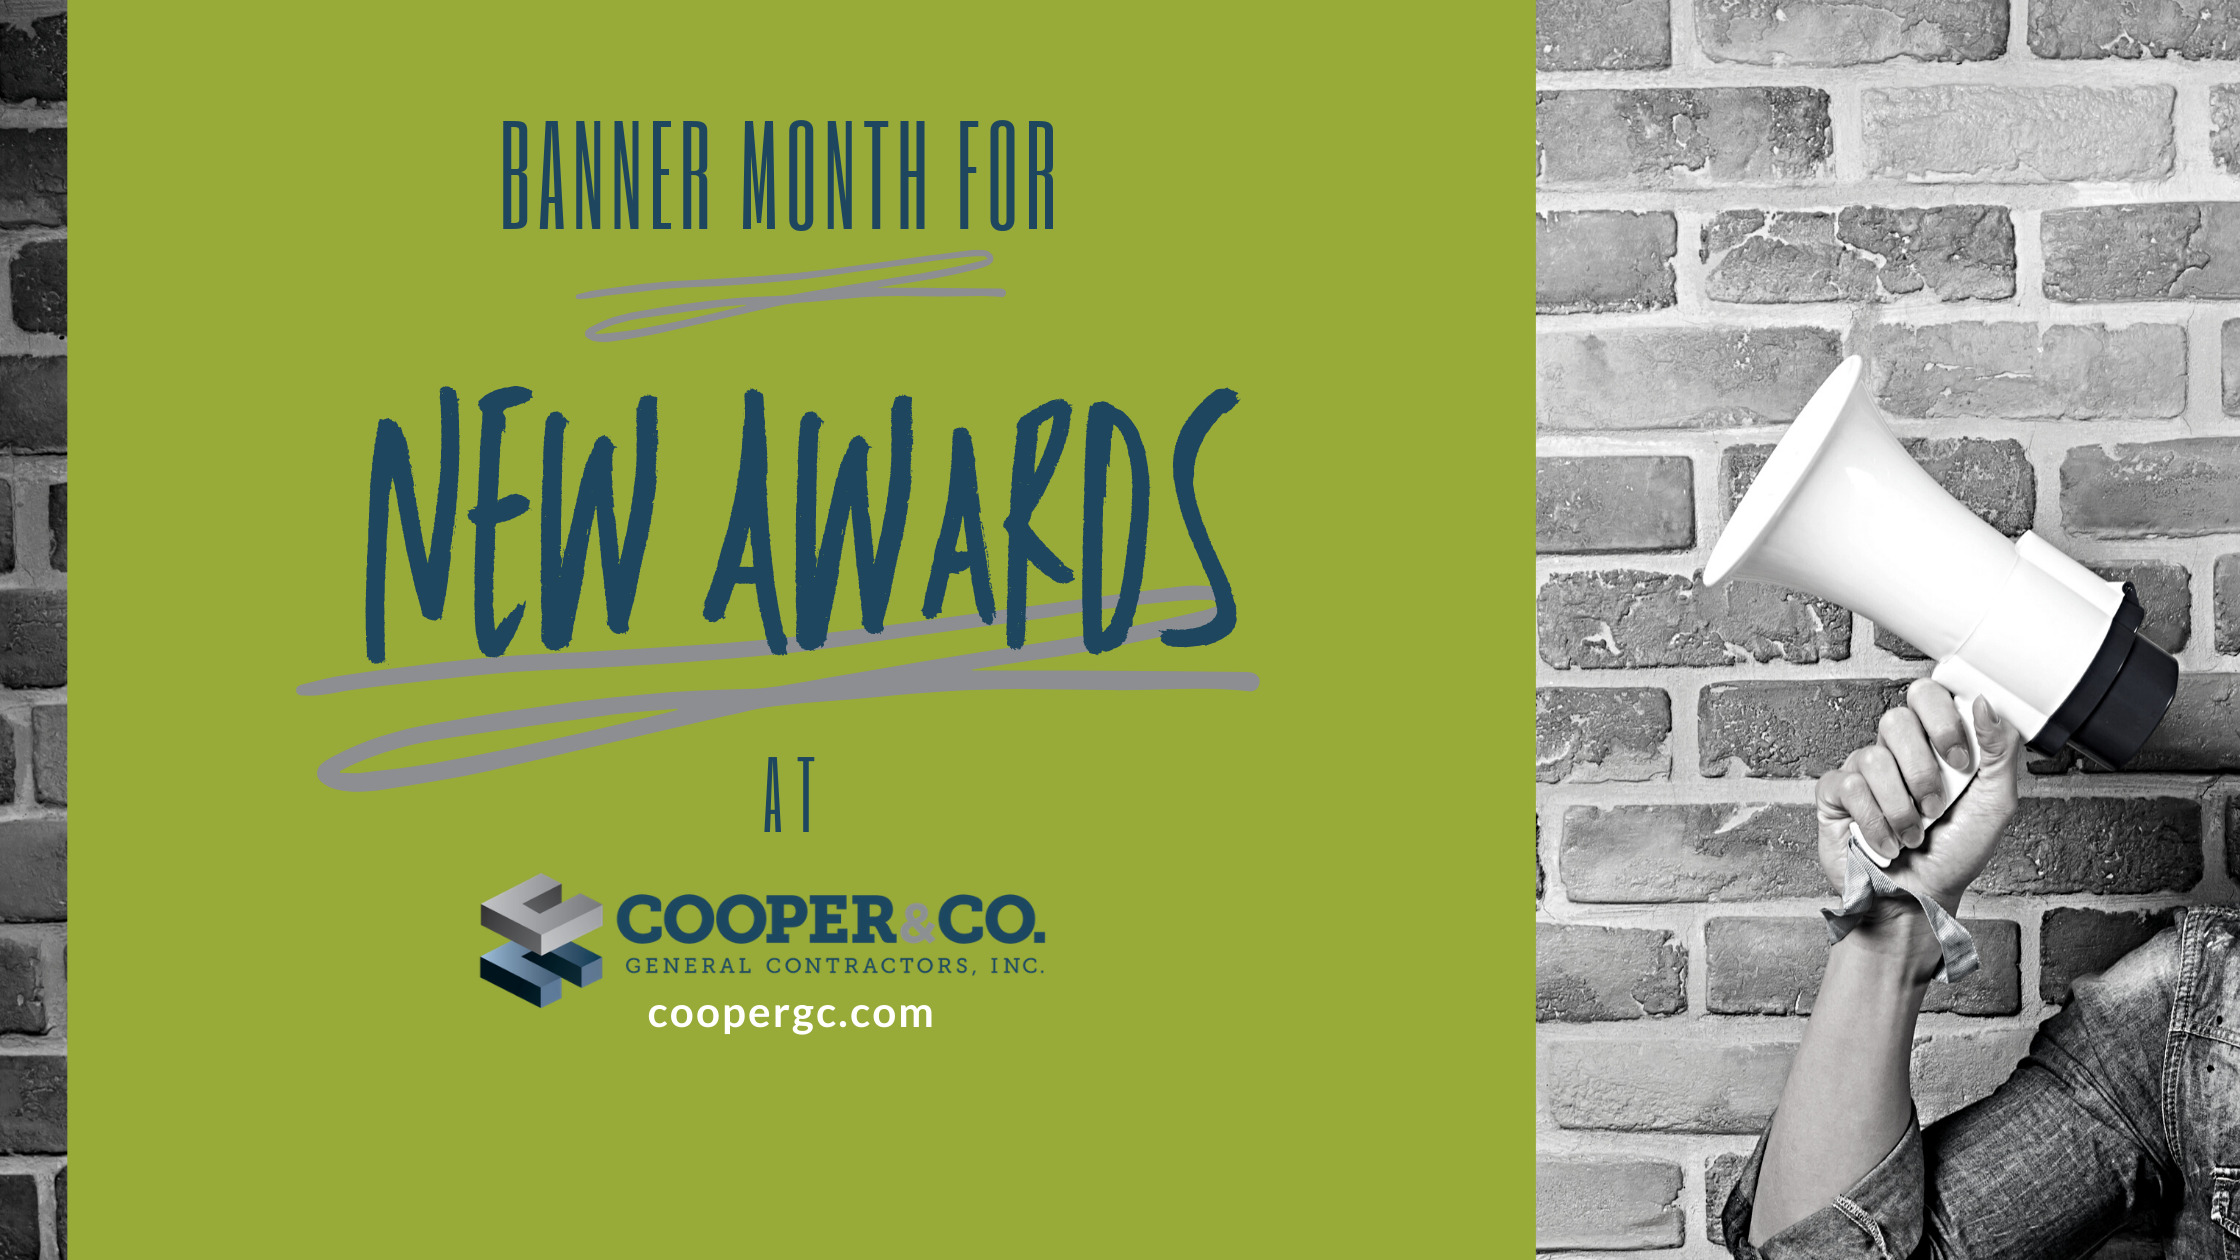 Banner Month for New Awards at Cooper & Company